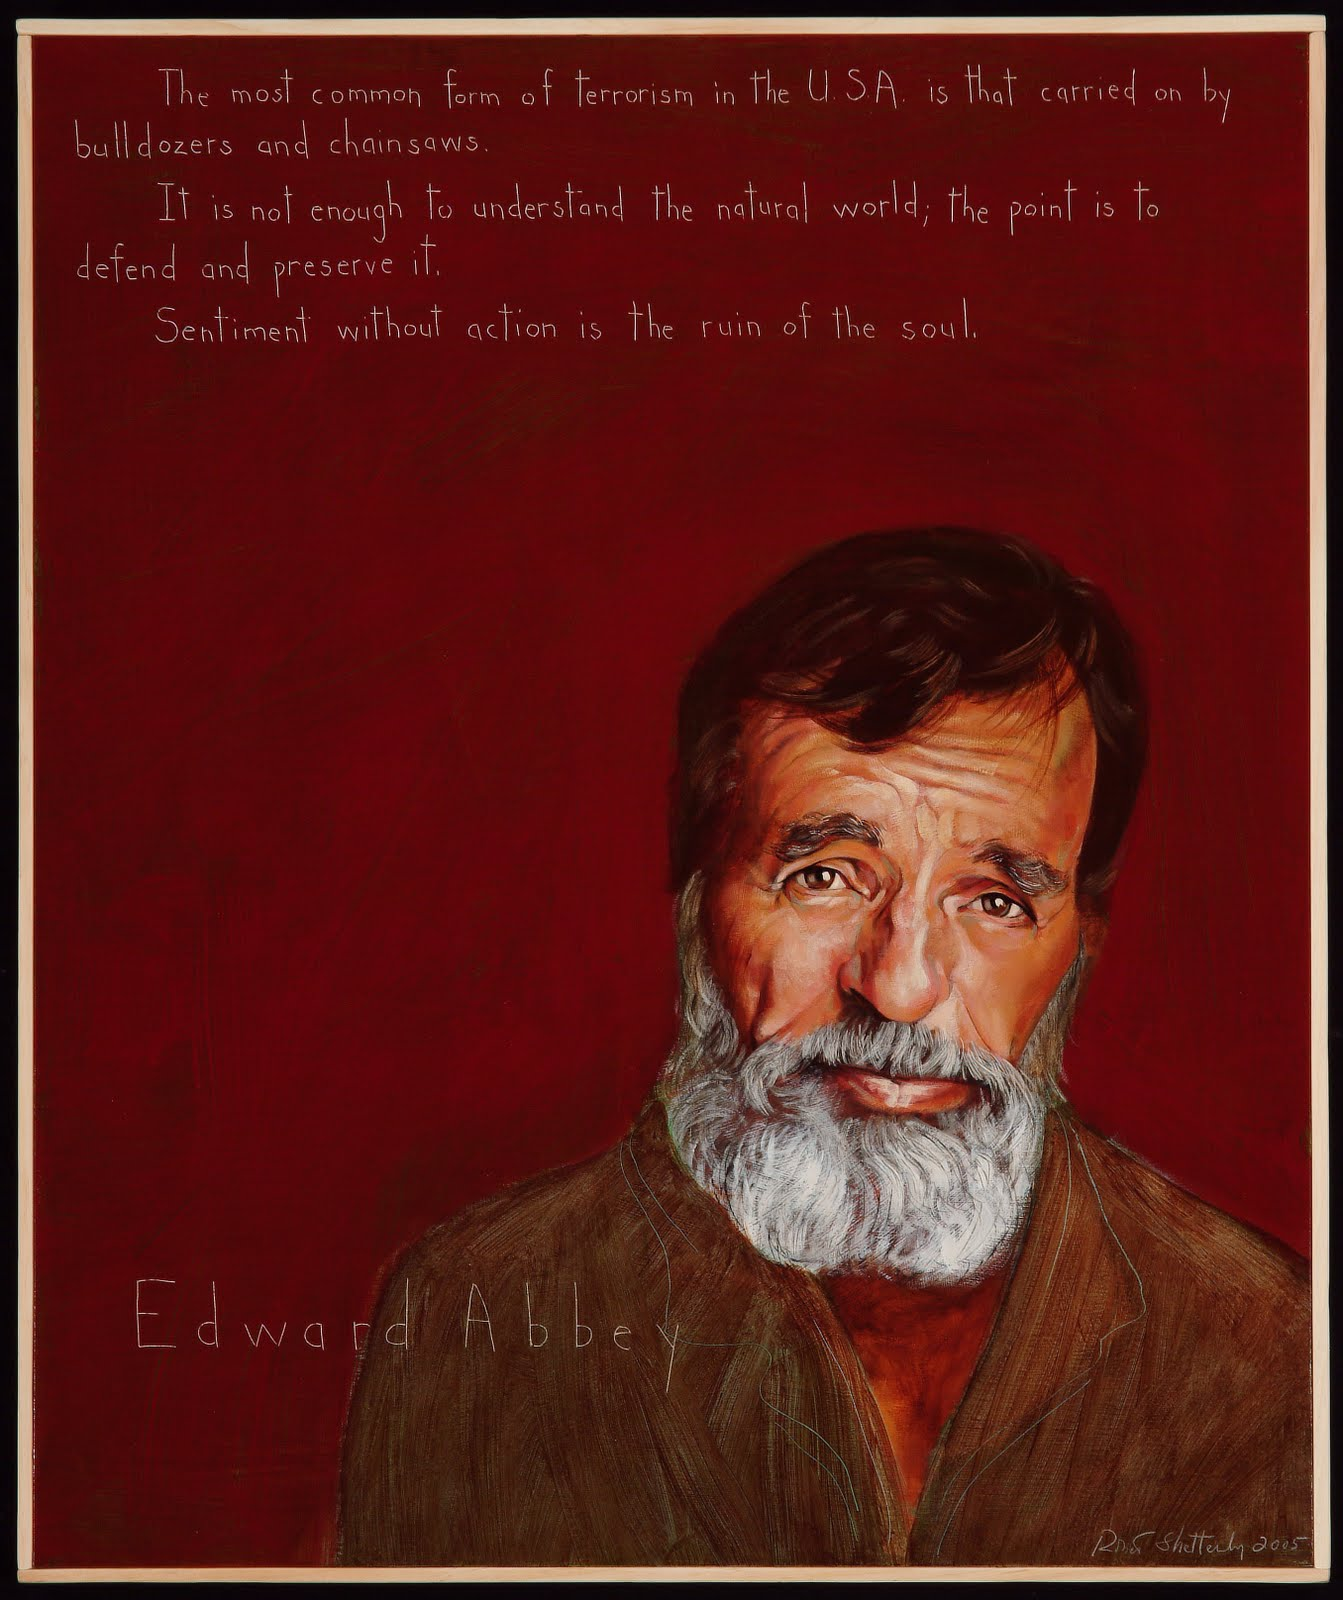 Quotes About Anger And Rage: Edward Abbey Quotes. QuotesGram